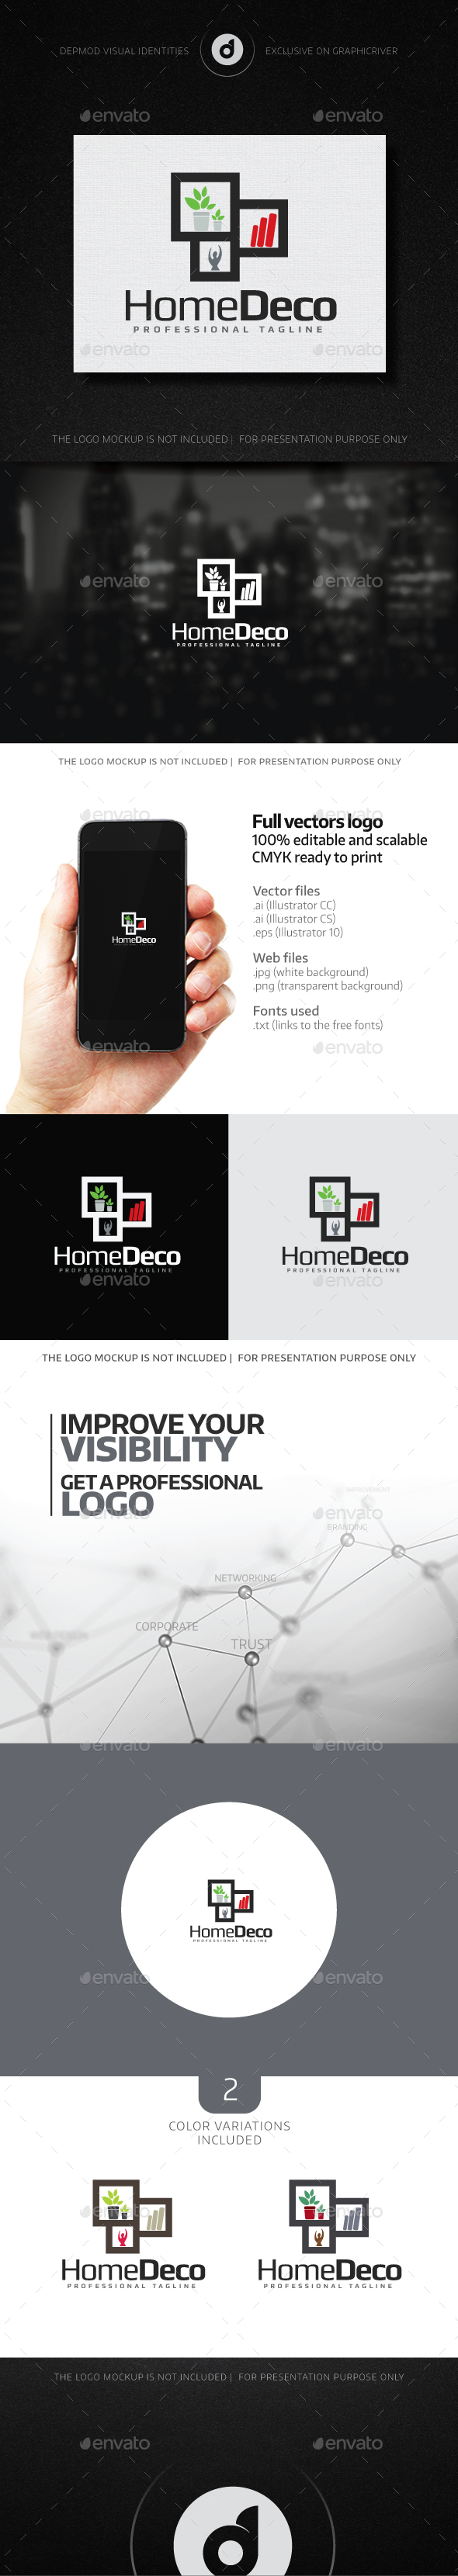 Home Deco Logo - Objects Logo Templates